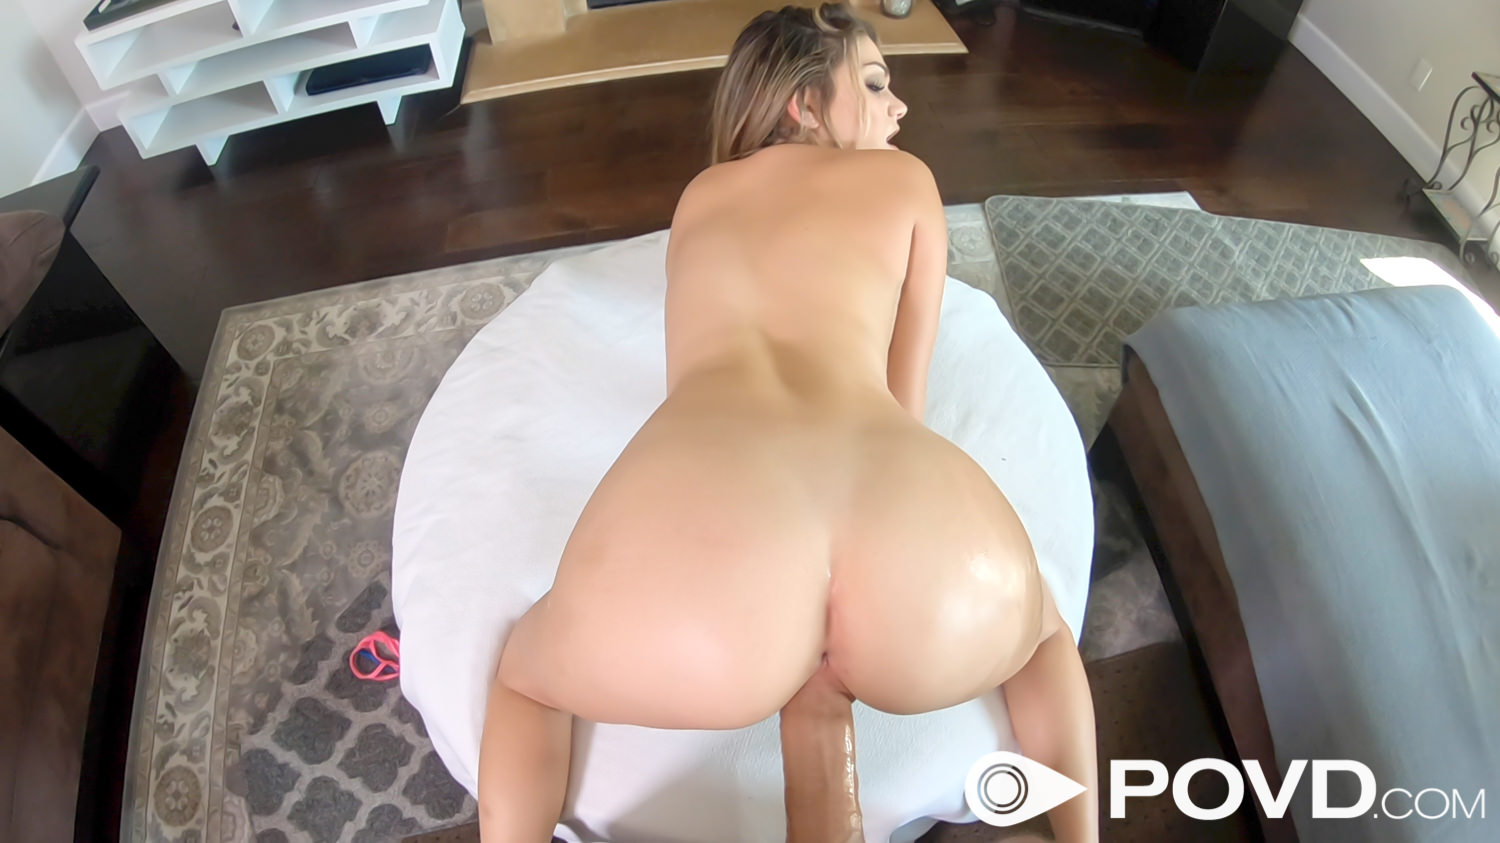 dolly buster sex porn